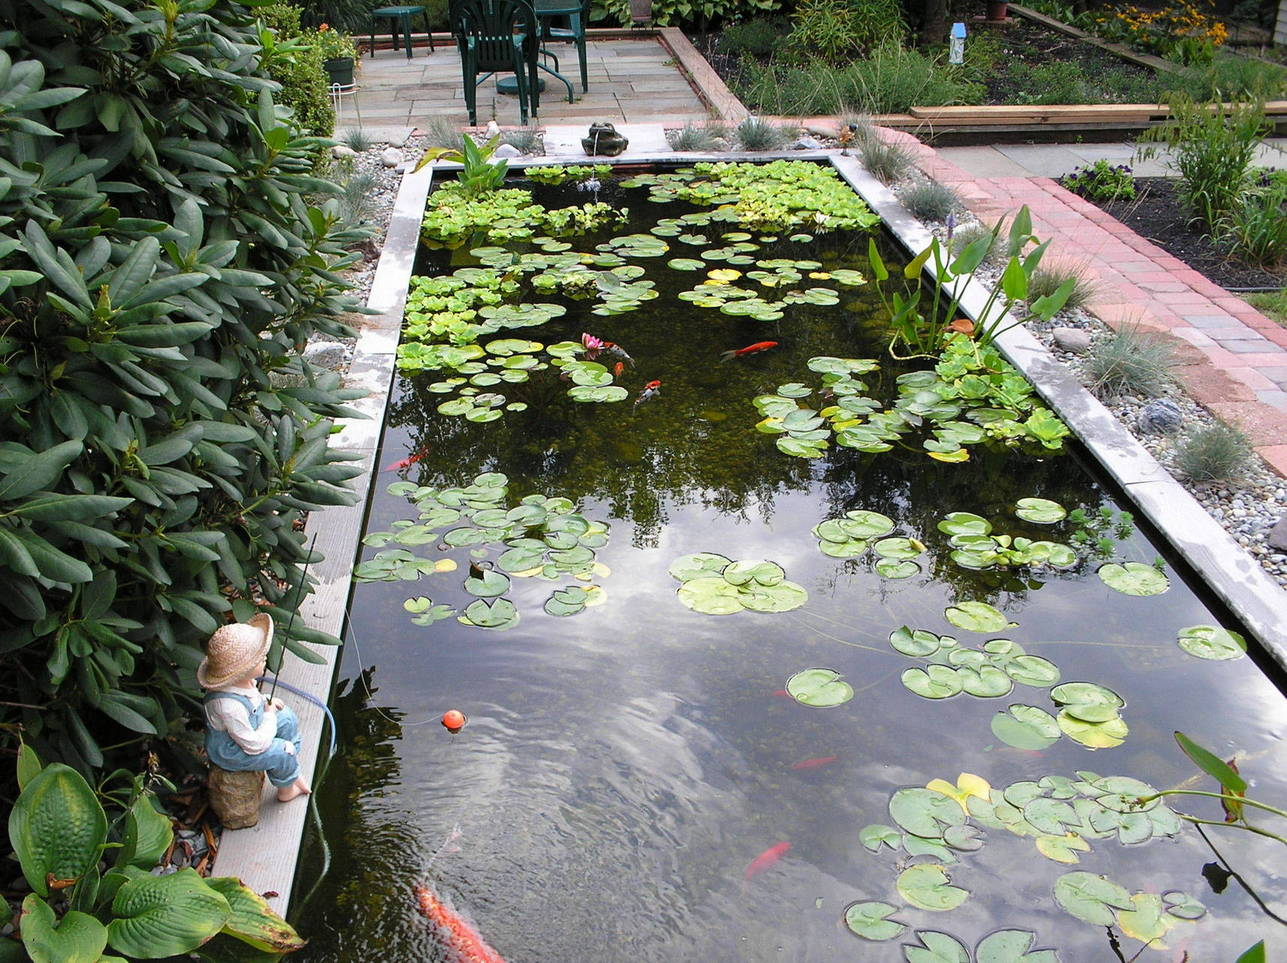 Oman landscape home landscaping designs your own t shirts for Koi ponds and gardens